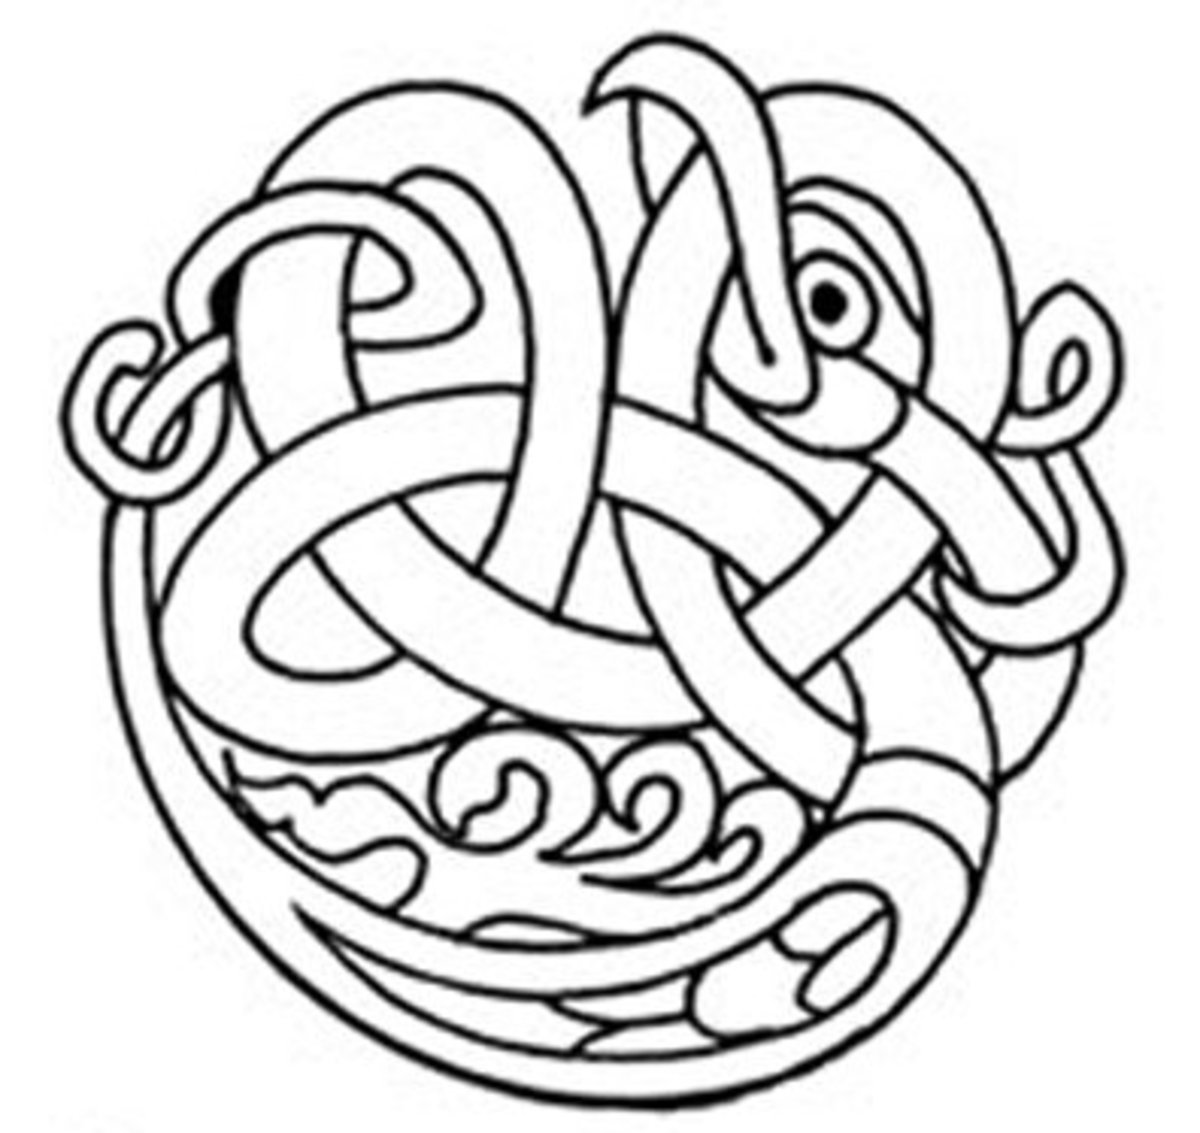 Celtic Design Art Coloring Pages for Kids Colouring Pictures to Print - Maternal Hawk